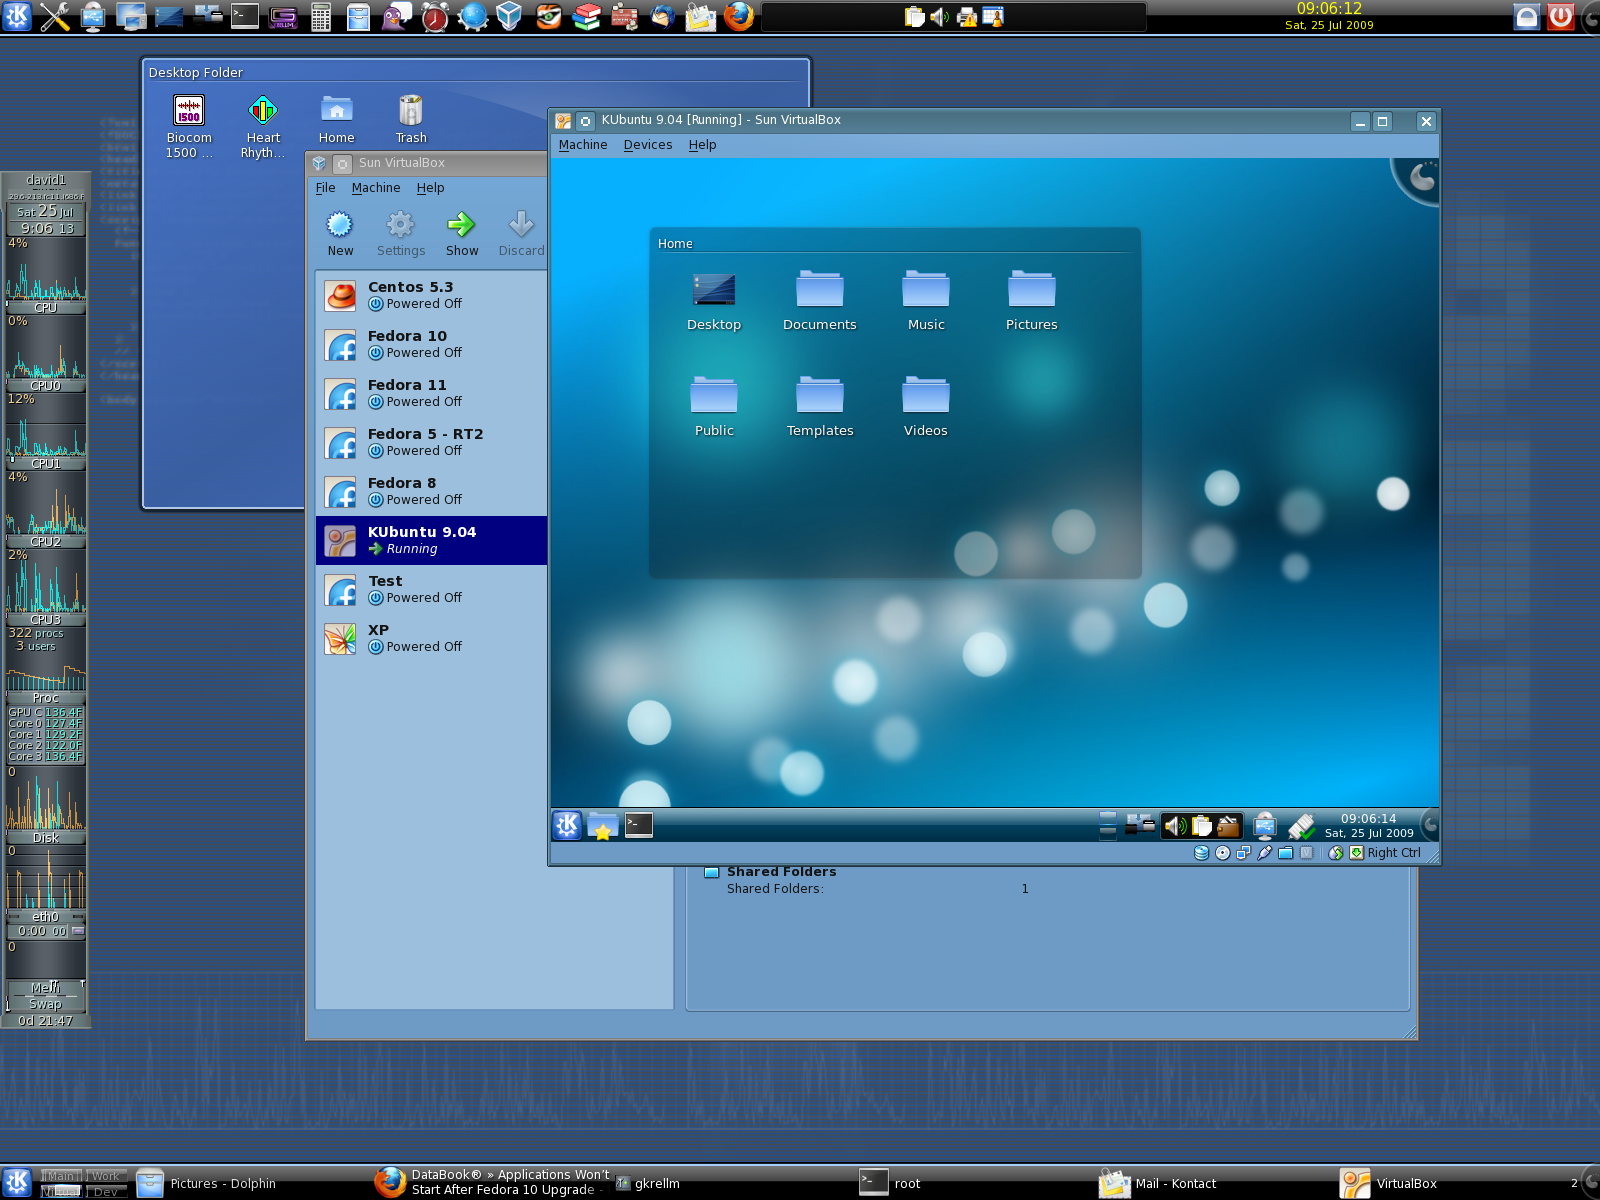 Here is my Fedora 11 desktop with Kubuntu running in a virtual Machine under VirtualBox. Notice the large number of launchers in the KDE Panel along the top of the screen. I have also placed a second Panel at the bottom of the screen for a wide Task Bar that lets me see and switch between large numbers of running applications.